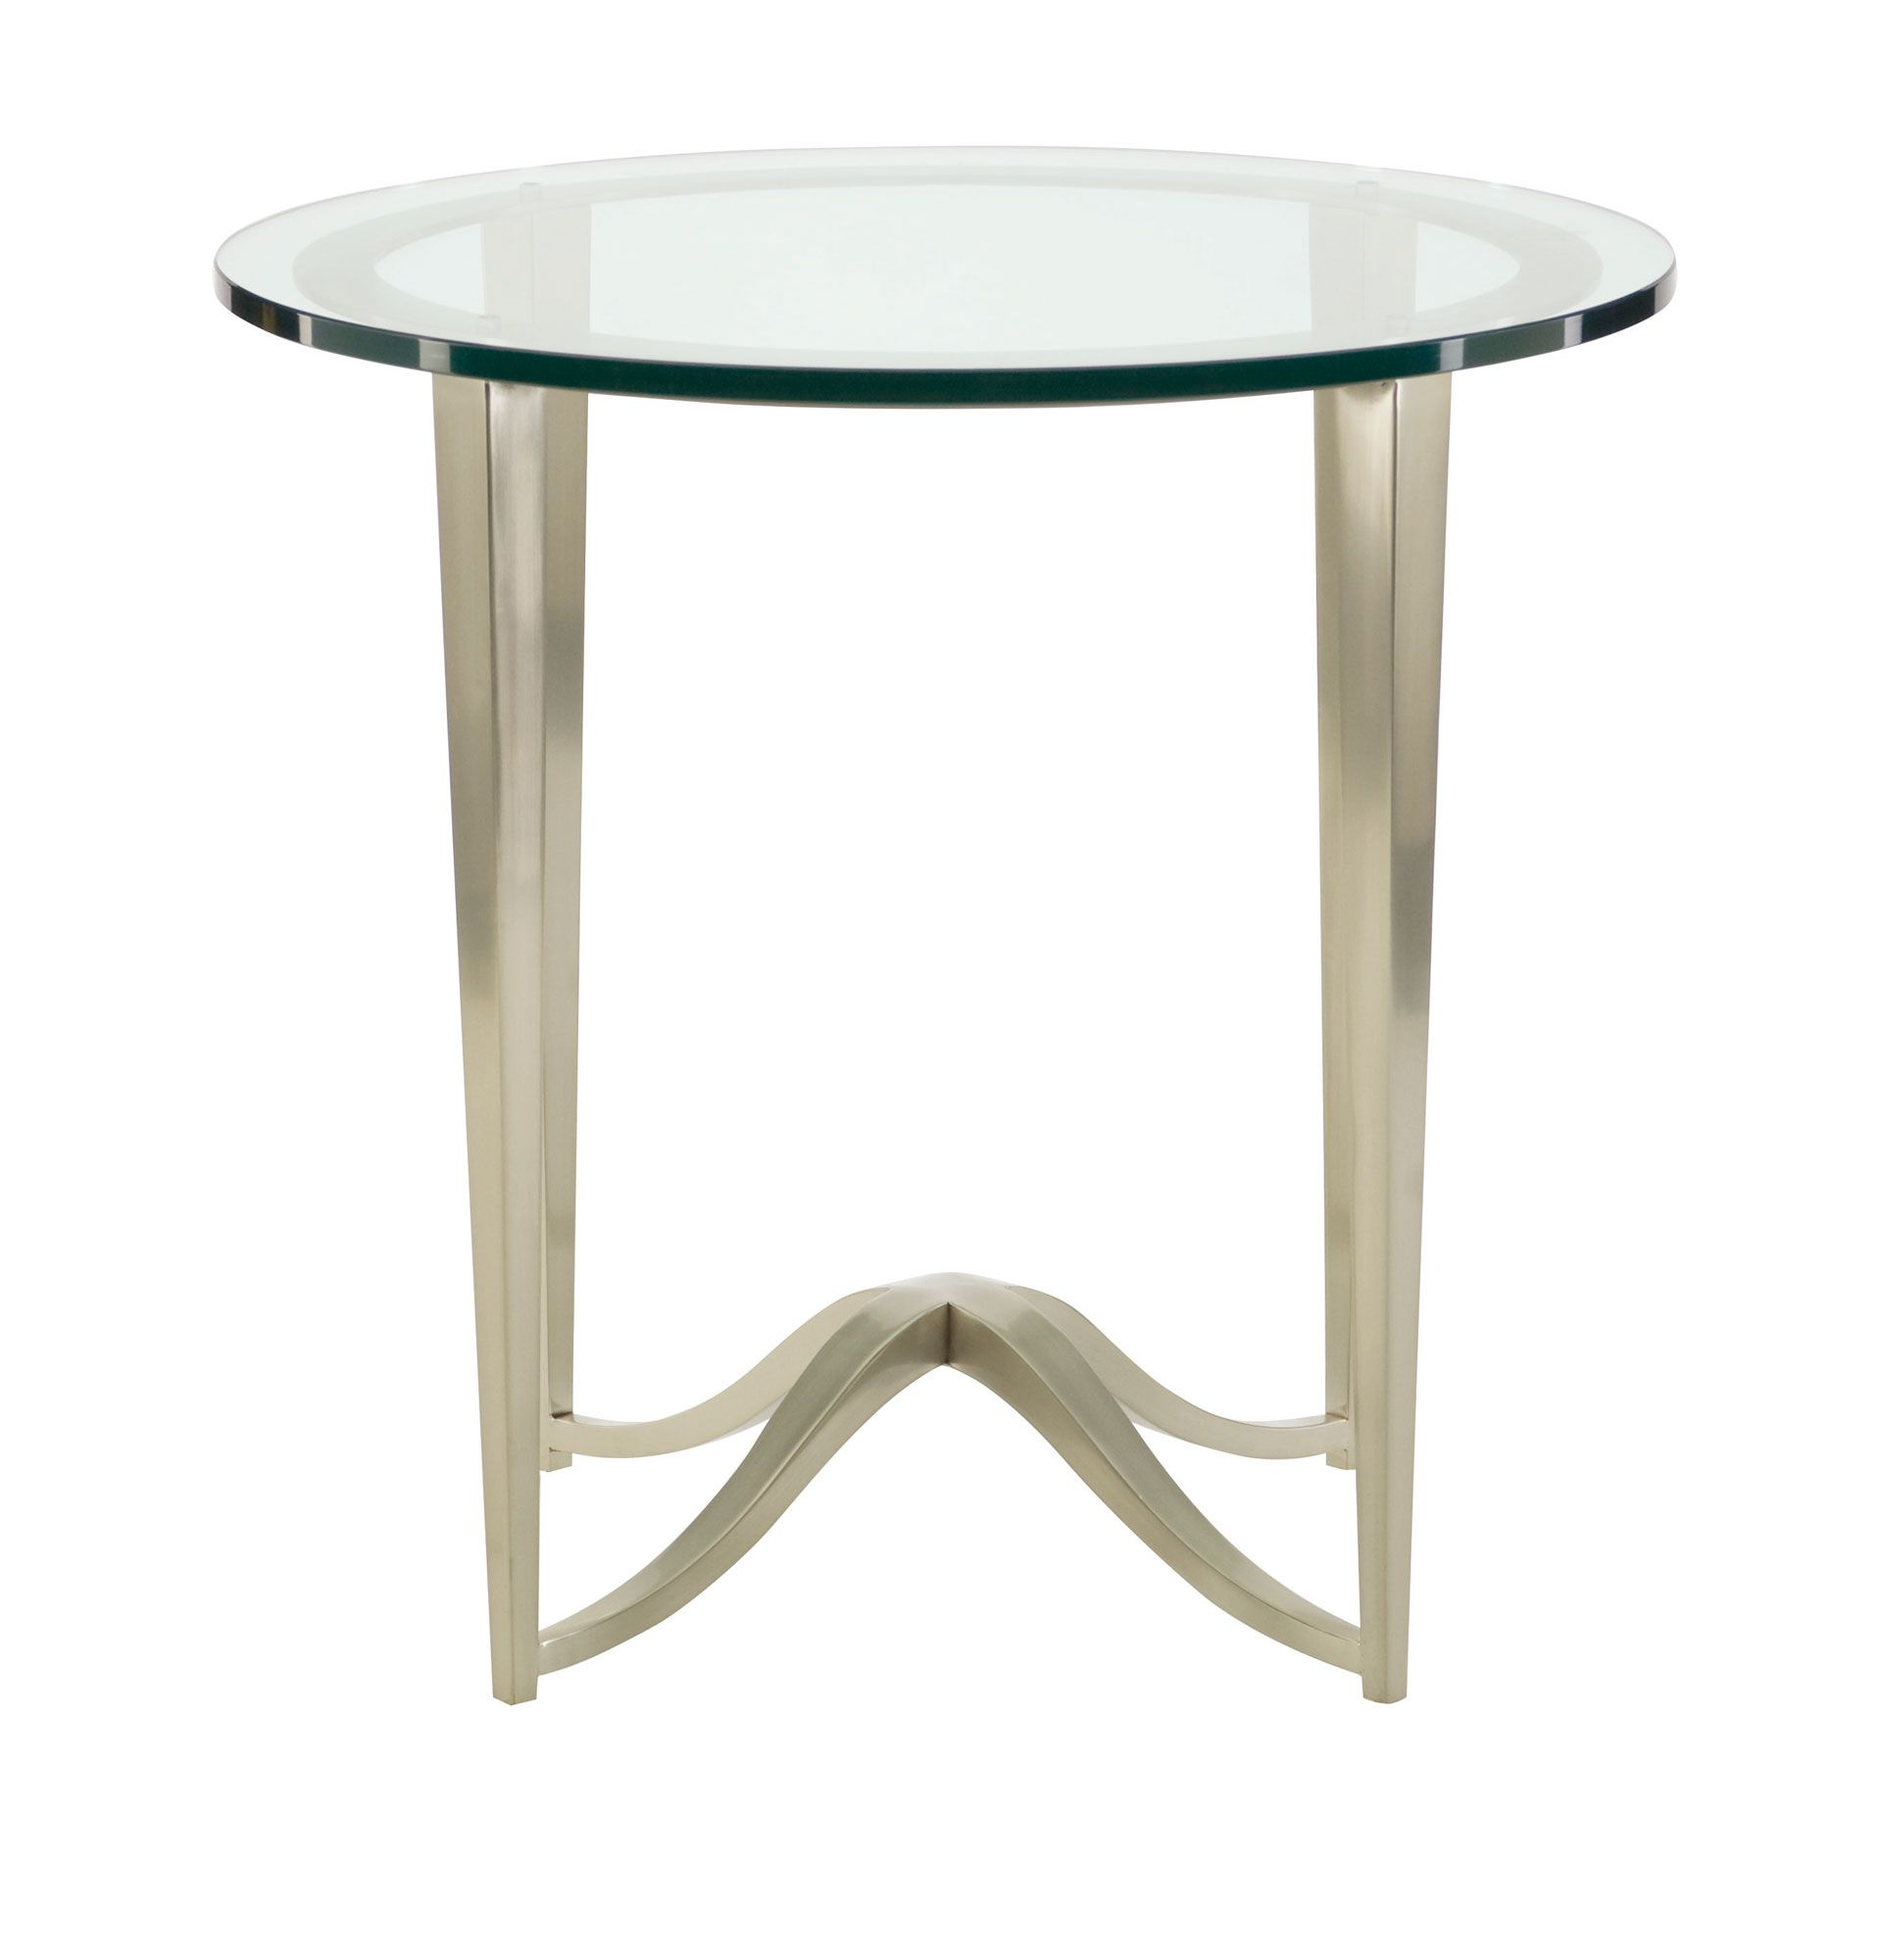 Best Round Chairside Table Glass Top Round Metal Chairside 400 x 300